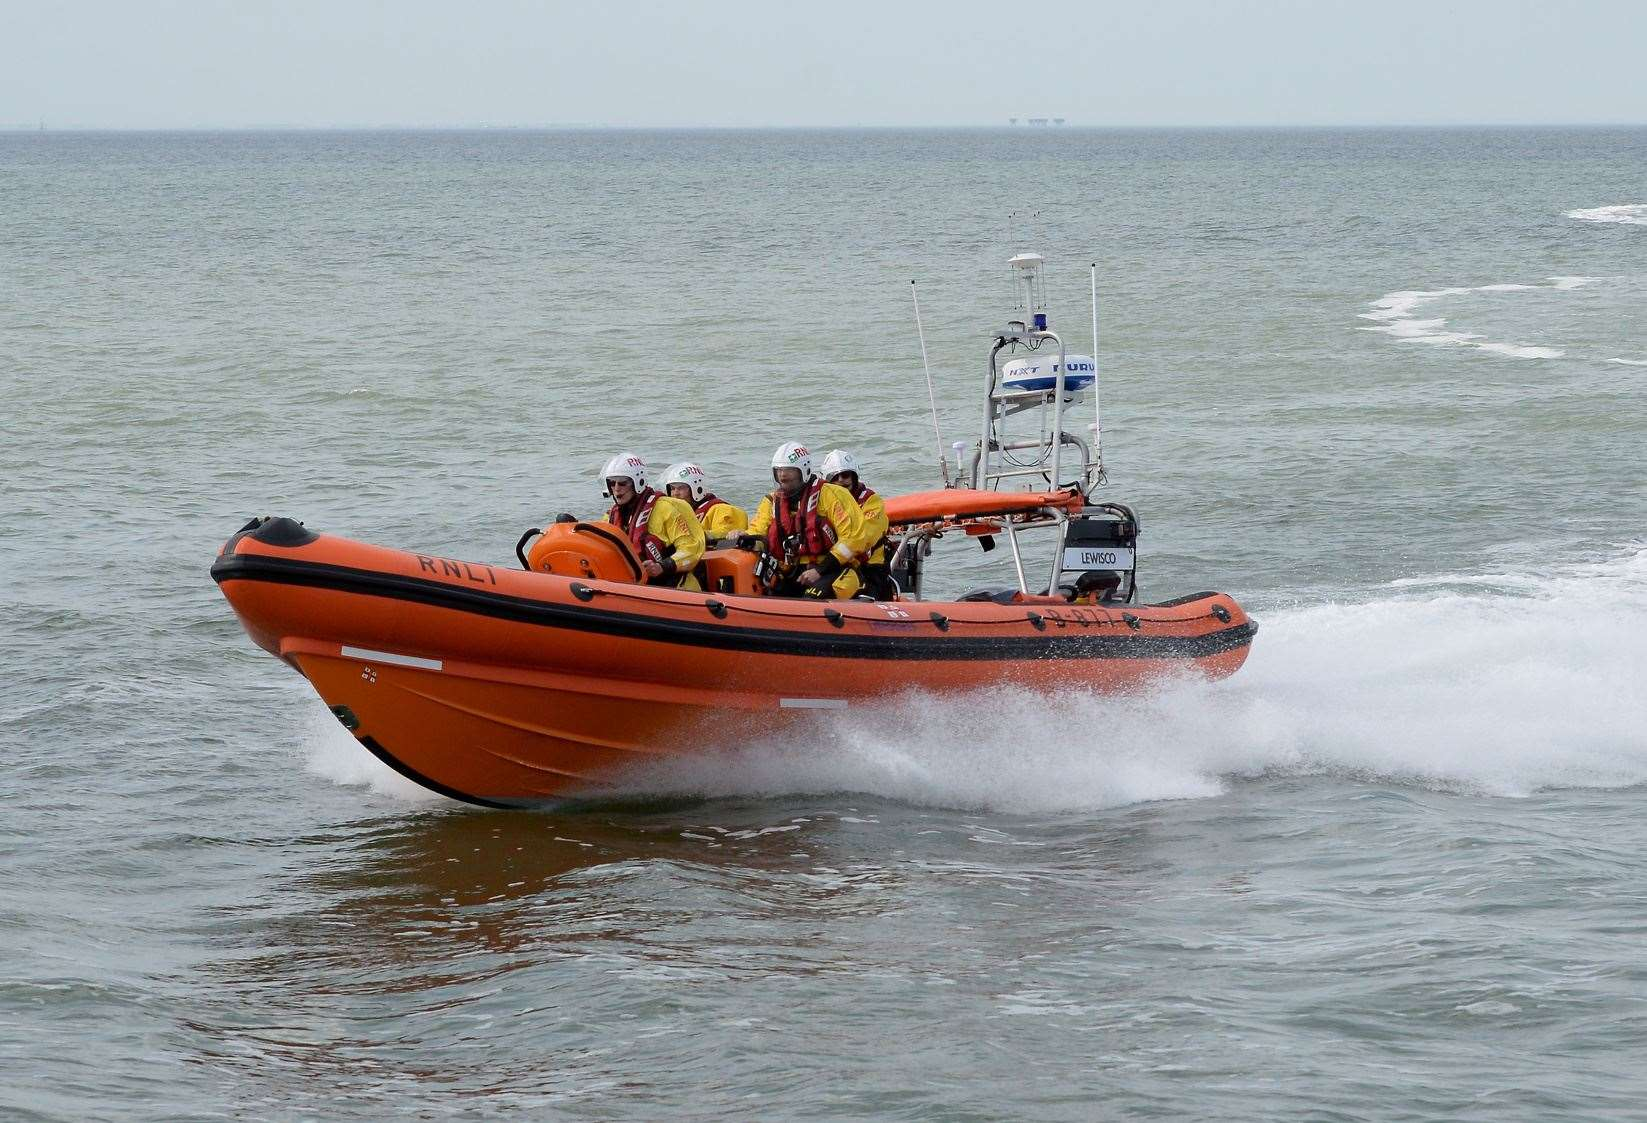 Whitstable Lifeboat. RNLI Whitstable stock image. (13490714)